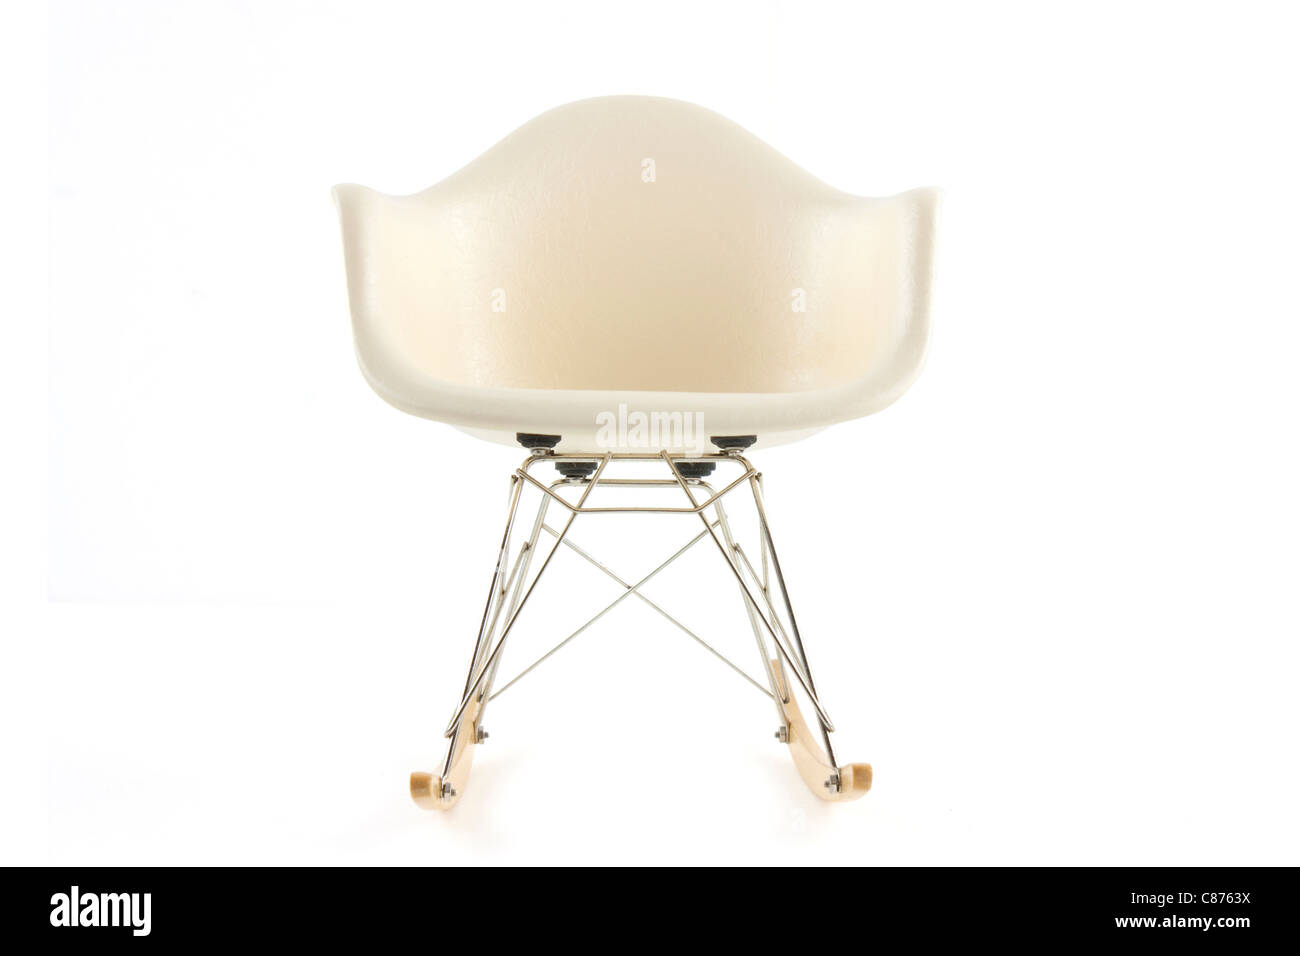 Eames Rocking Chair : Modern design classic eames rocking chair on white background stock